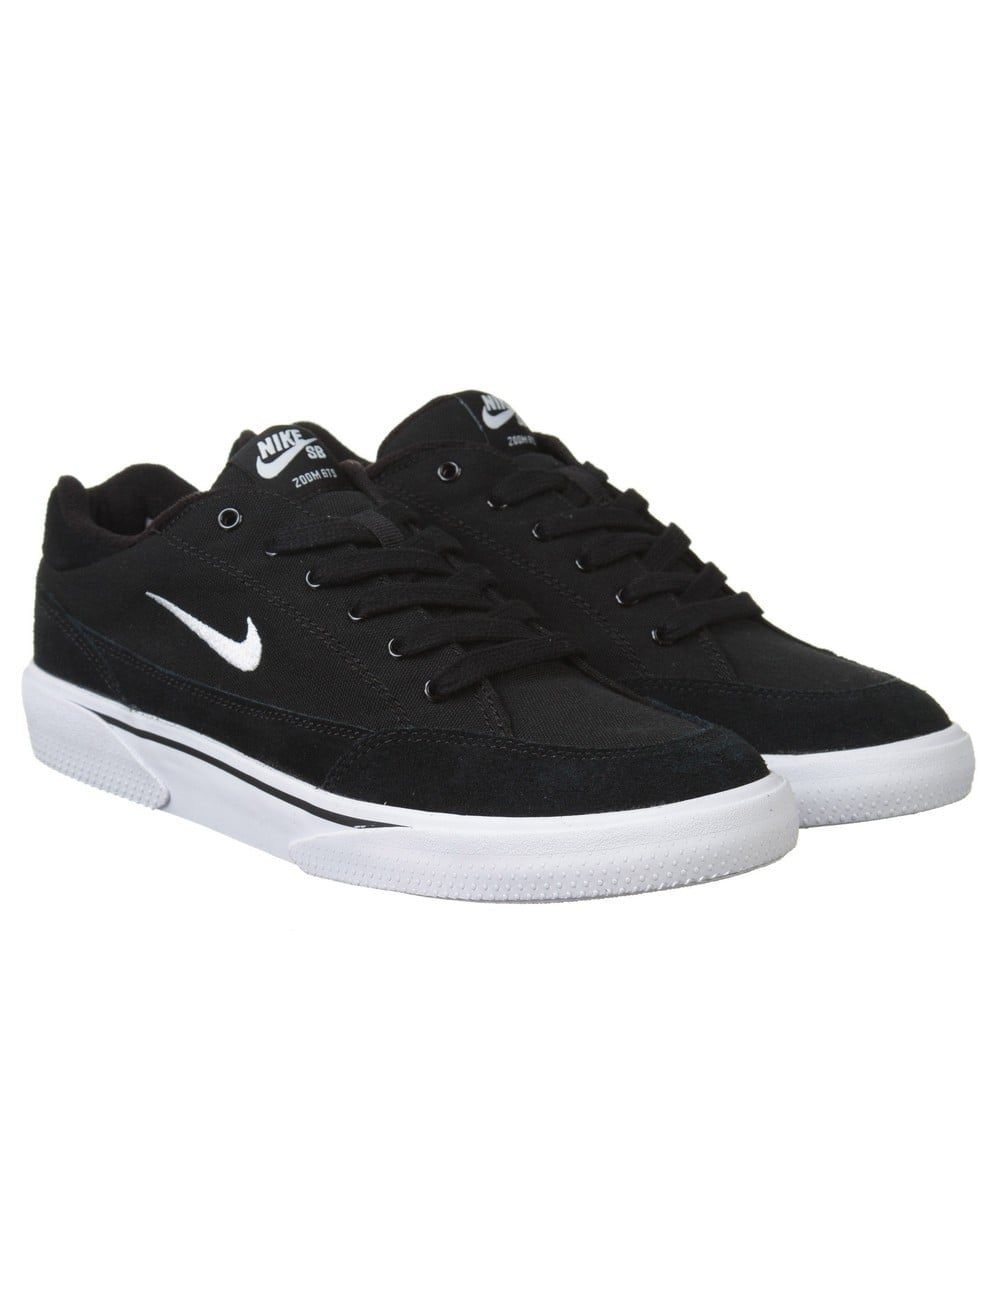 promo code b95e8 17e31 Nike SB Zoom GTS Shoes - Black White